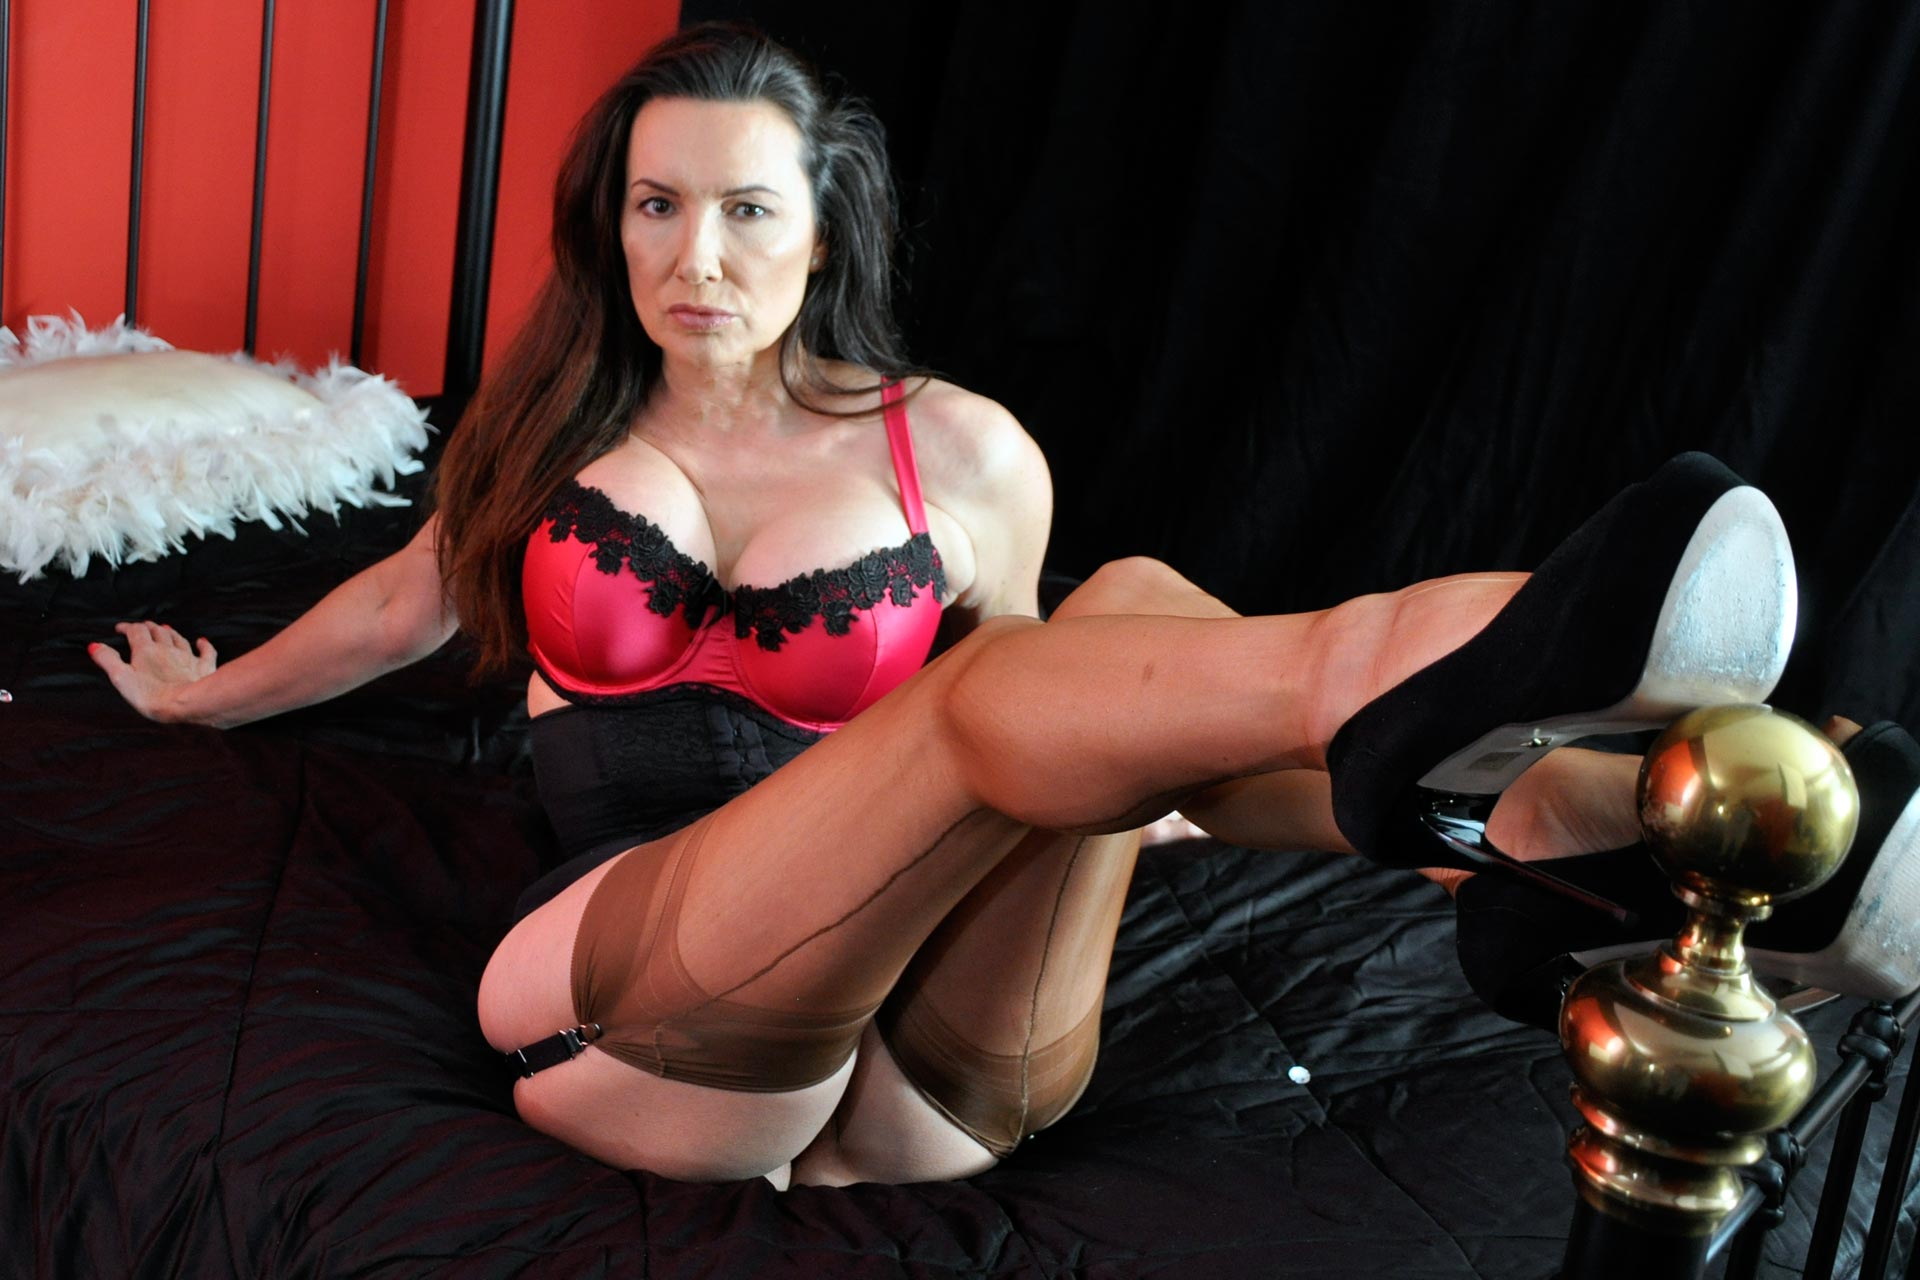 Nylon Jane laying on her bed with nylon stockings